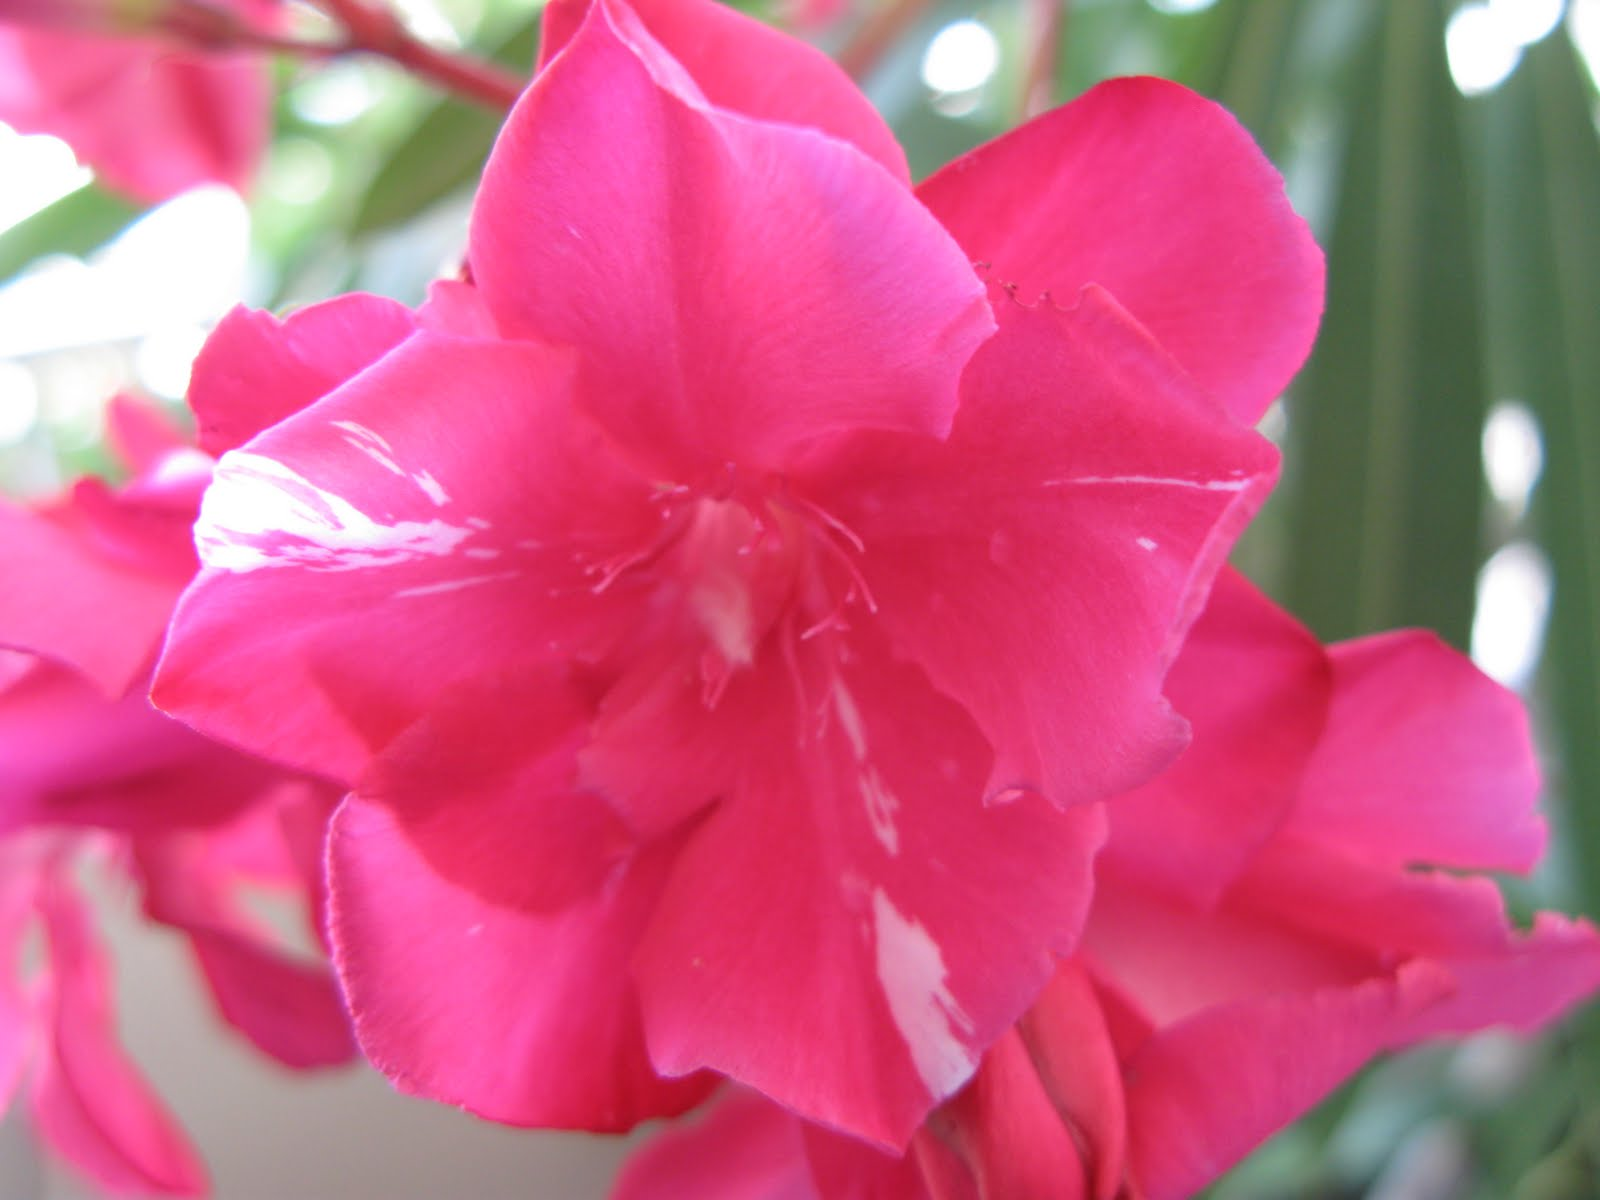 oleanders-are-the-most-poisonous-plant-in-garden